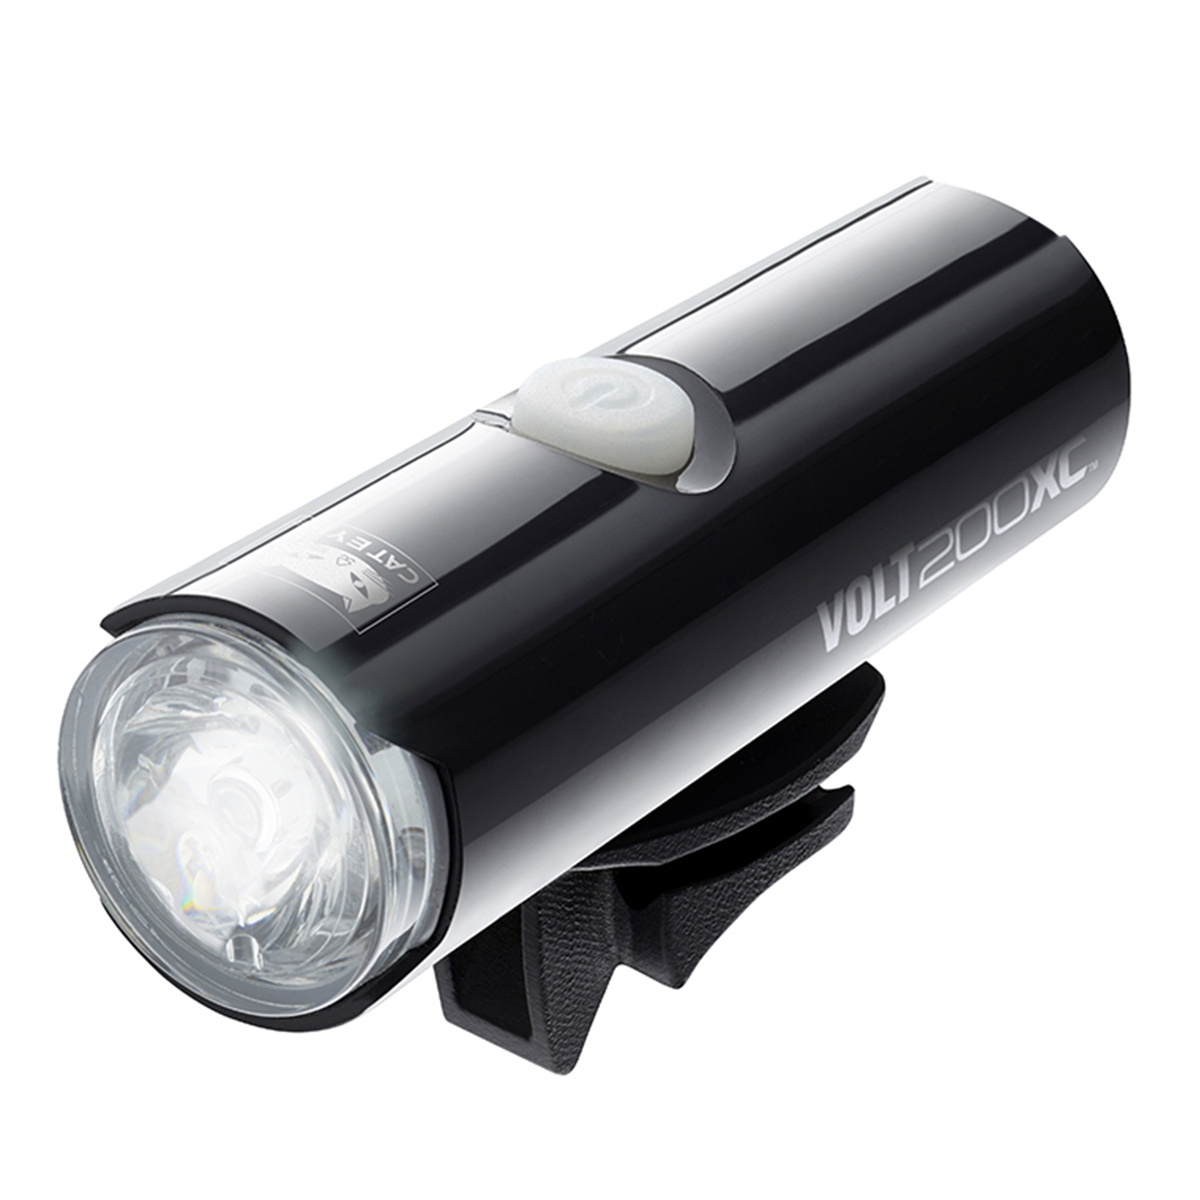 Cateye Volt 200 XC Rechargeable Front Light